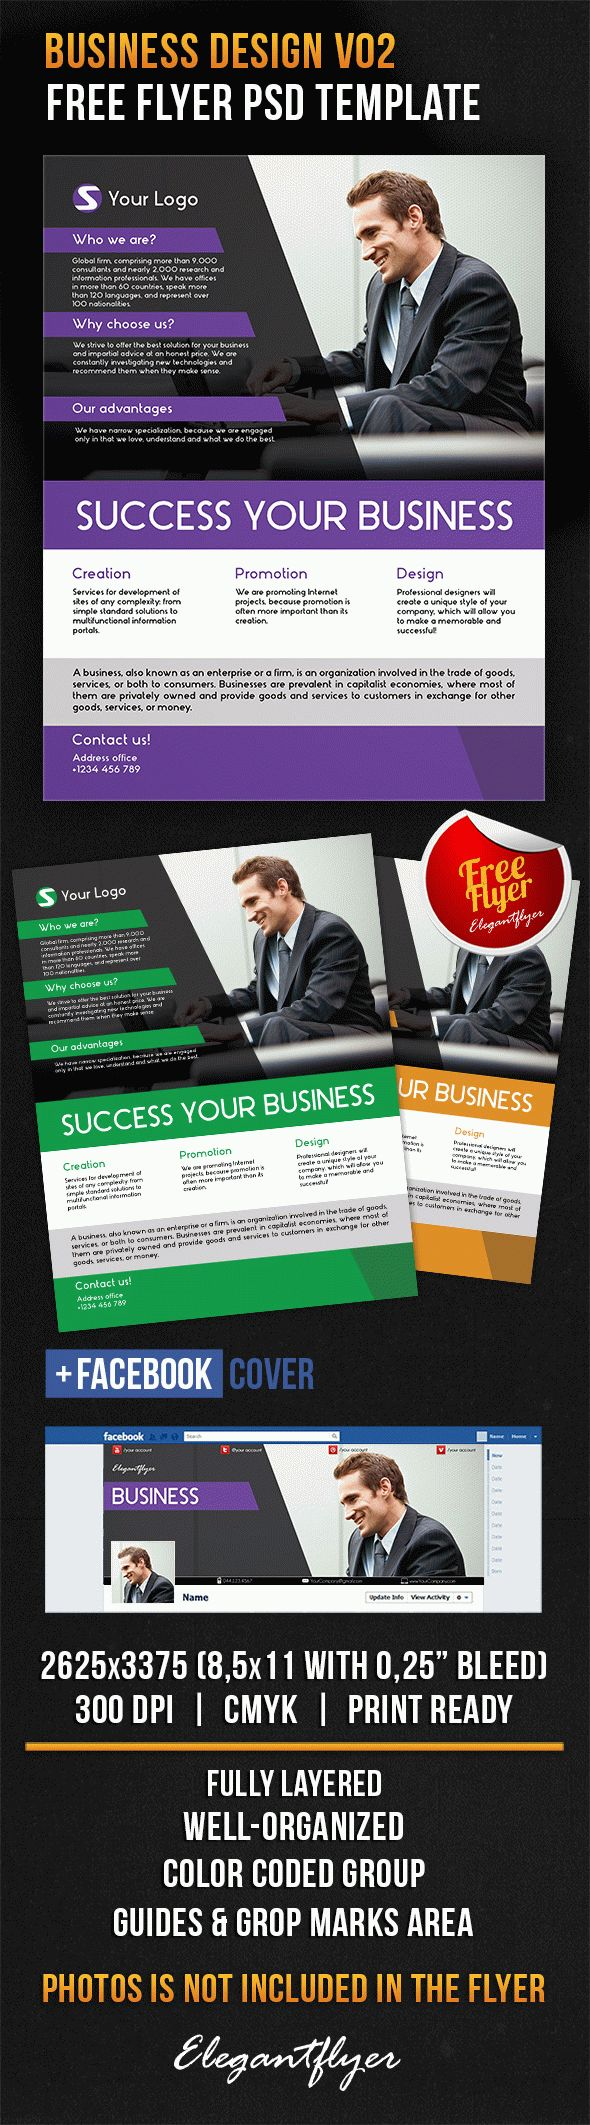 Business Design V02 – Free Flyer PSD Template + Facebook Cover